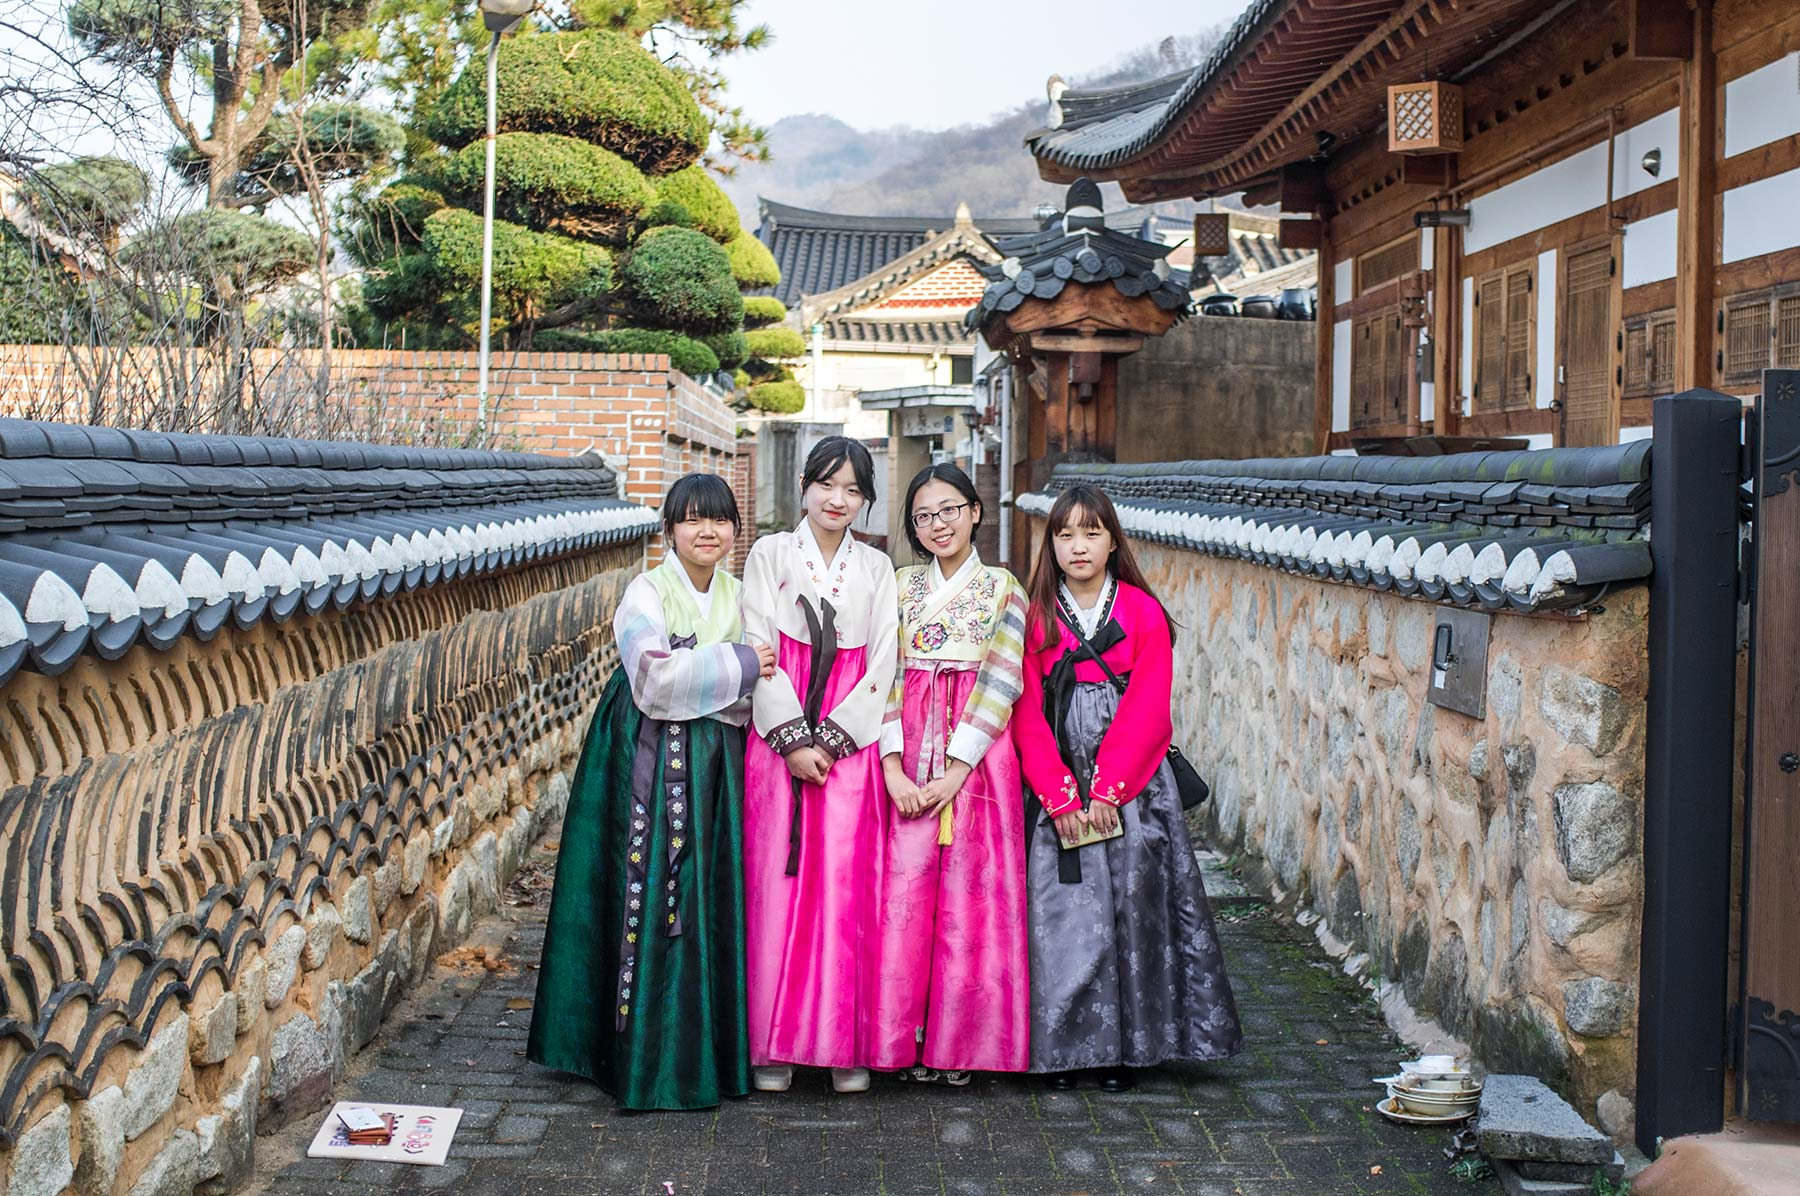 Girls in traditional hanbok dress.